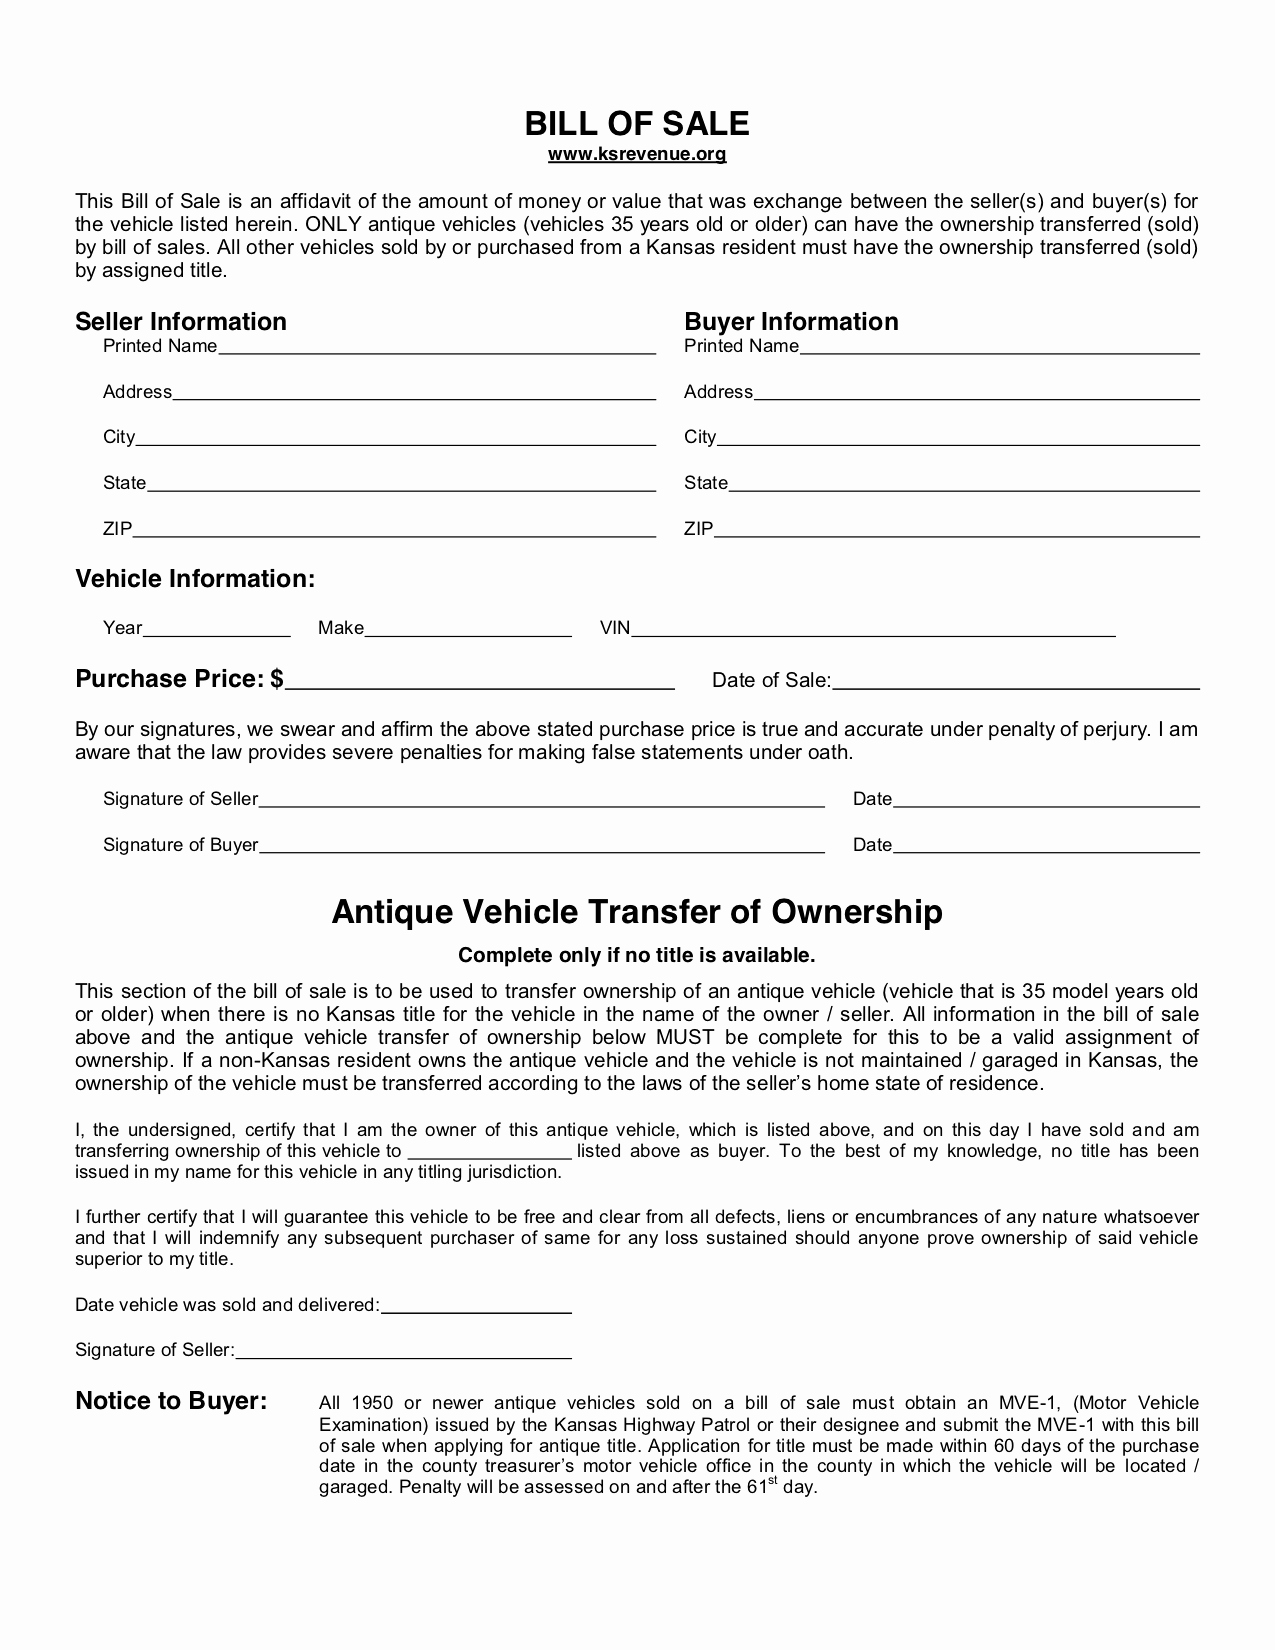 Template Bill Of Sale Car Inspirational Free Kansas Bill Of Sale form Pdf Template